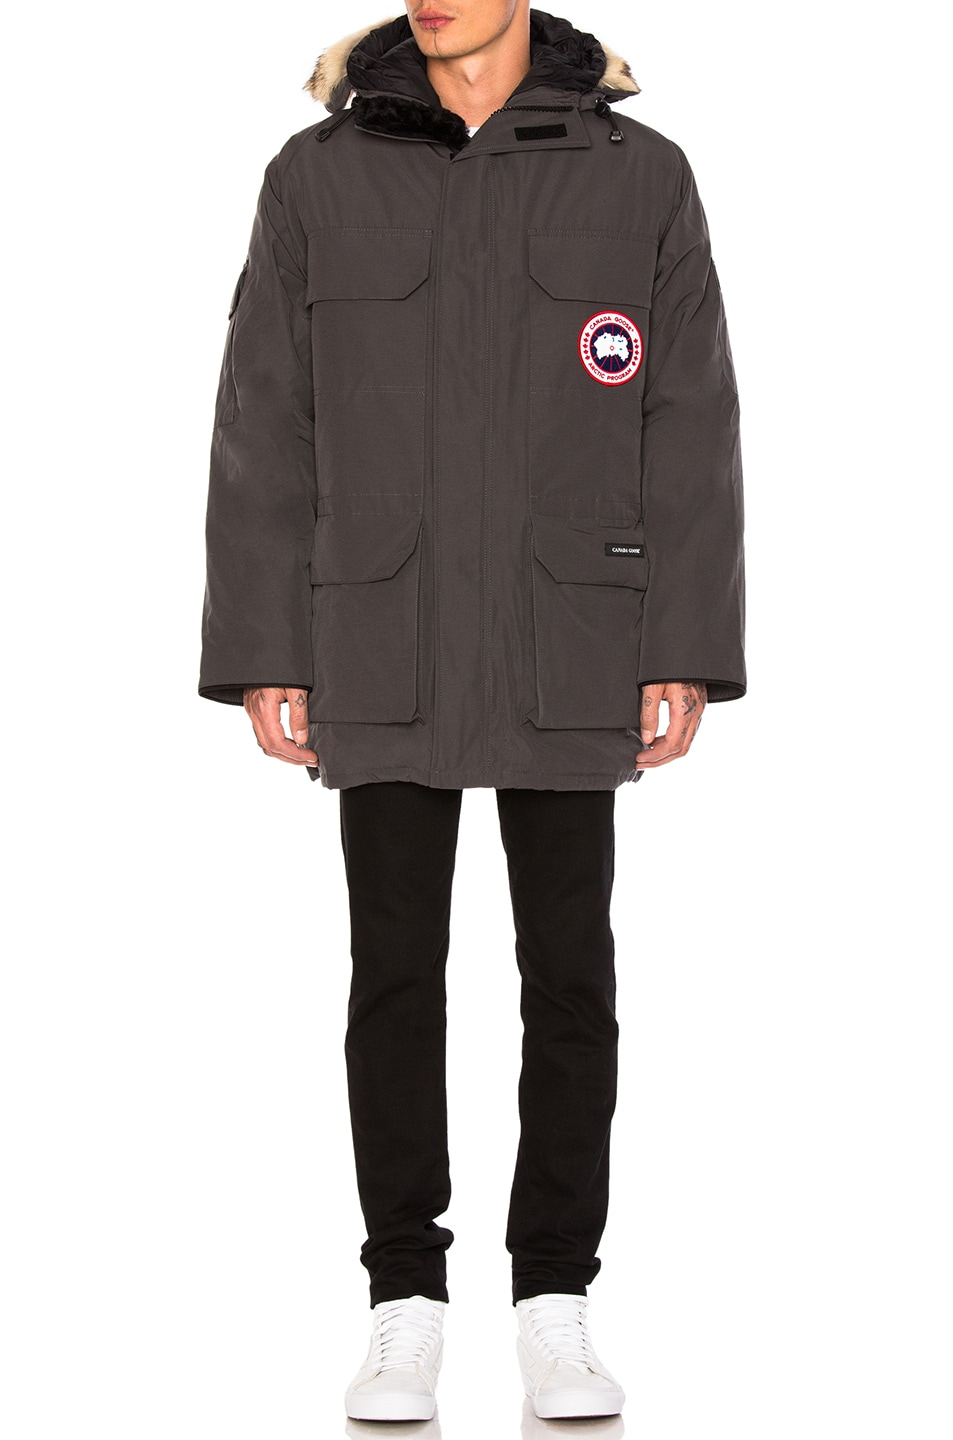 Image 2 of Canada Goose Expedition Parka in Graphite